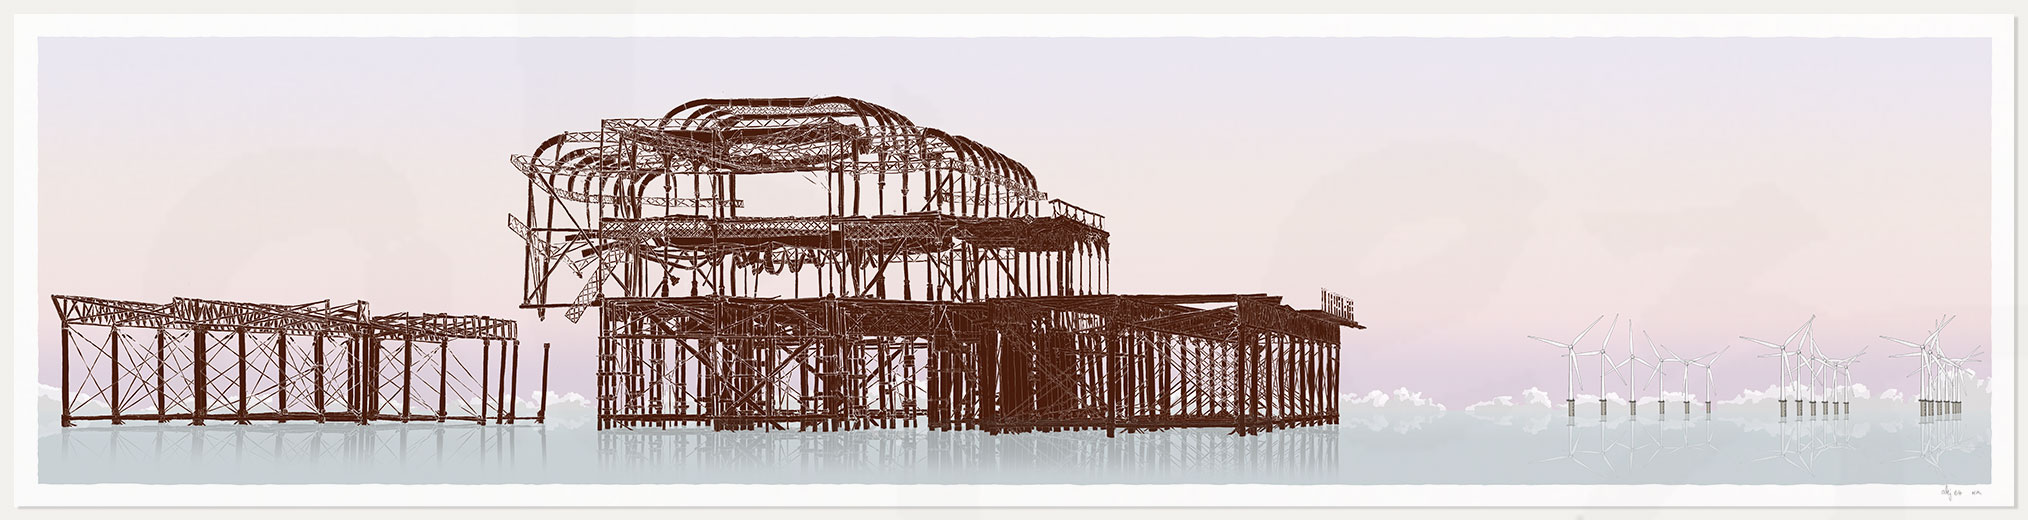 print named West Pier Rampion Wind Farm Eventide by artist alej ez